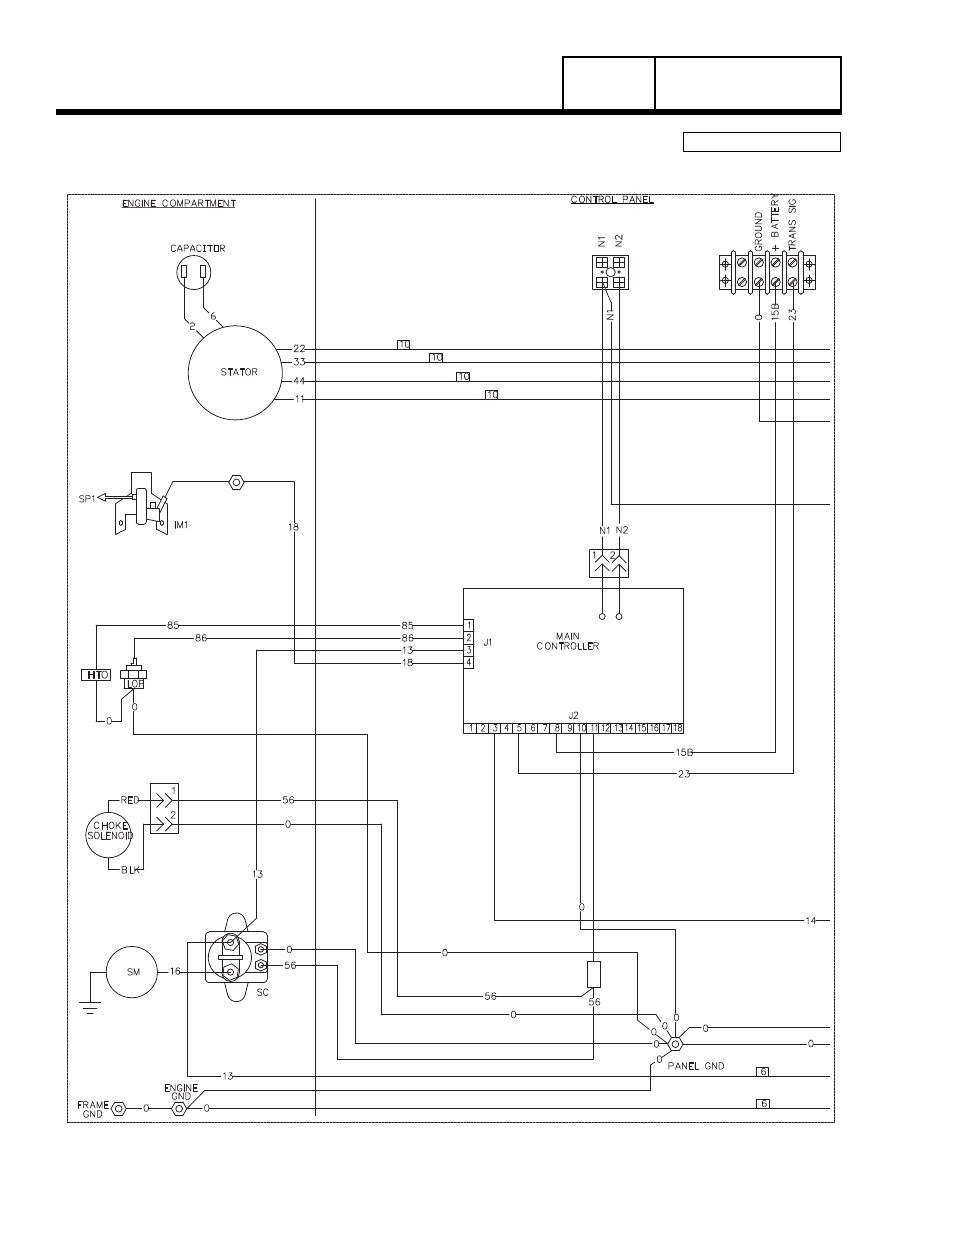 8 Kw Generac Wiring Diagram Anything Diagrams Generator Transfer Switch Home Standby Group G Part 7 Power Rh Manualsdir Com 14kw